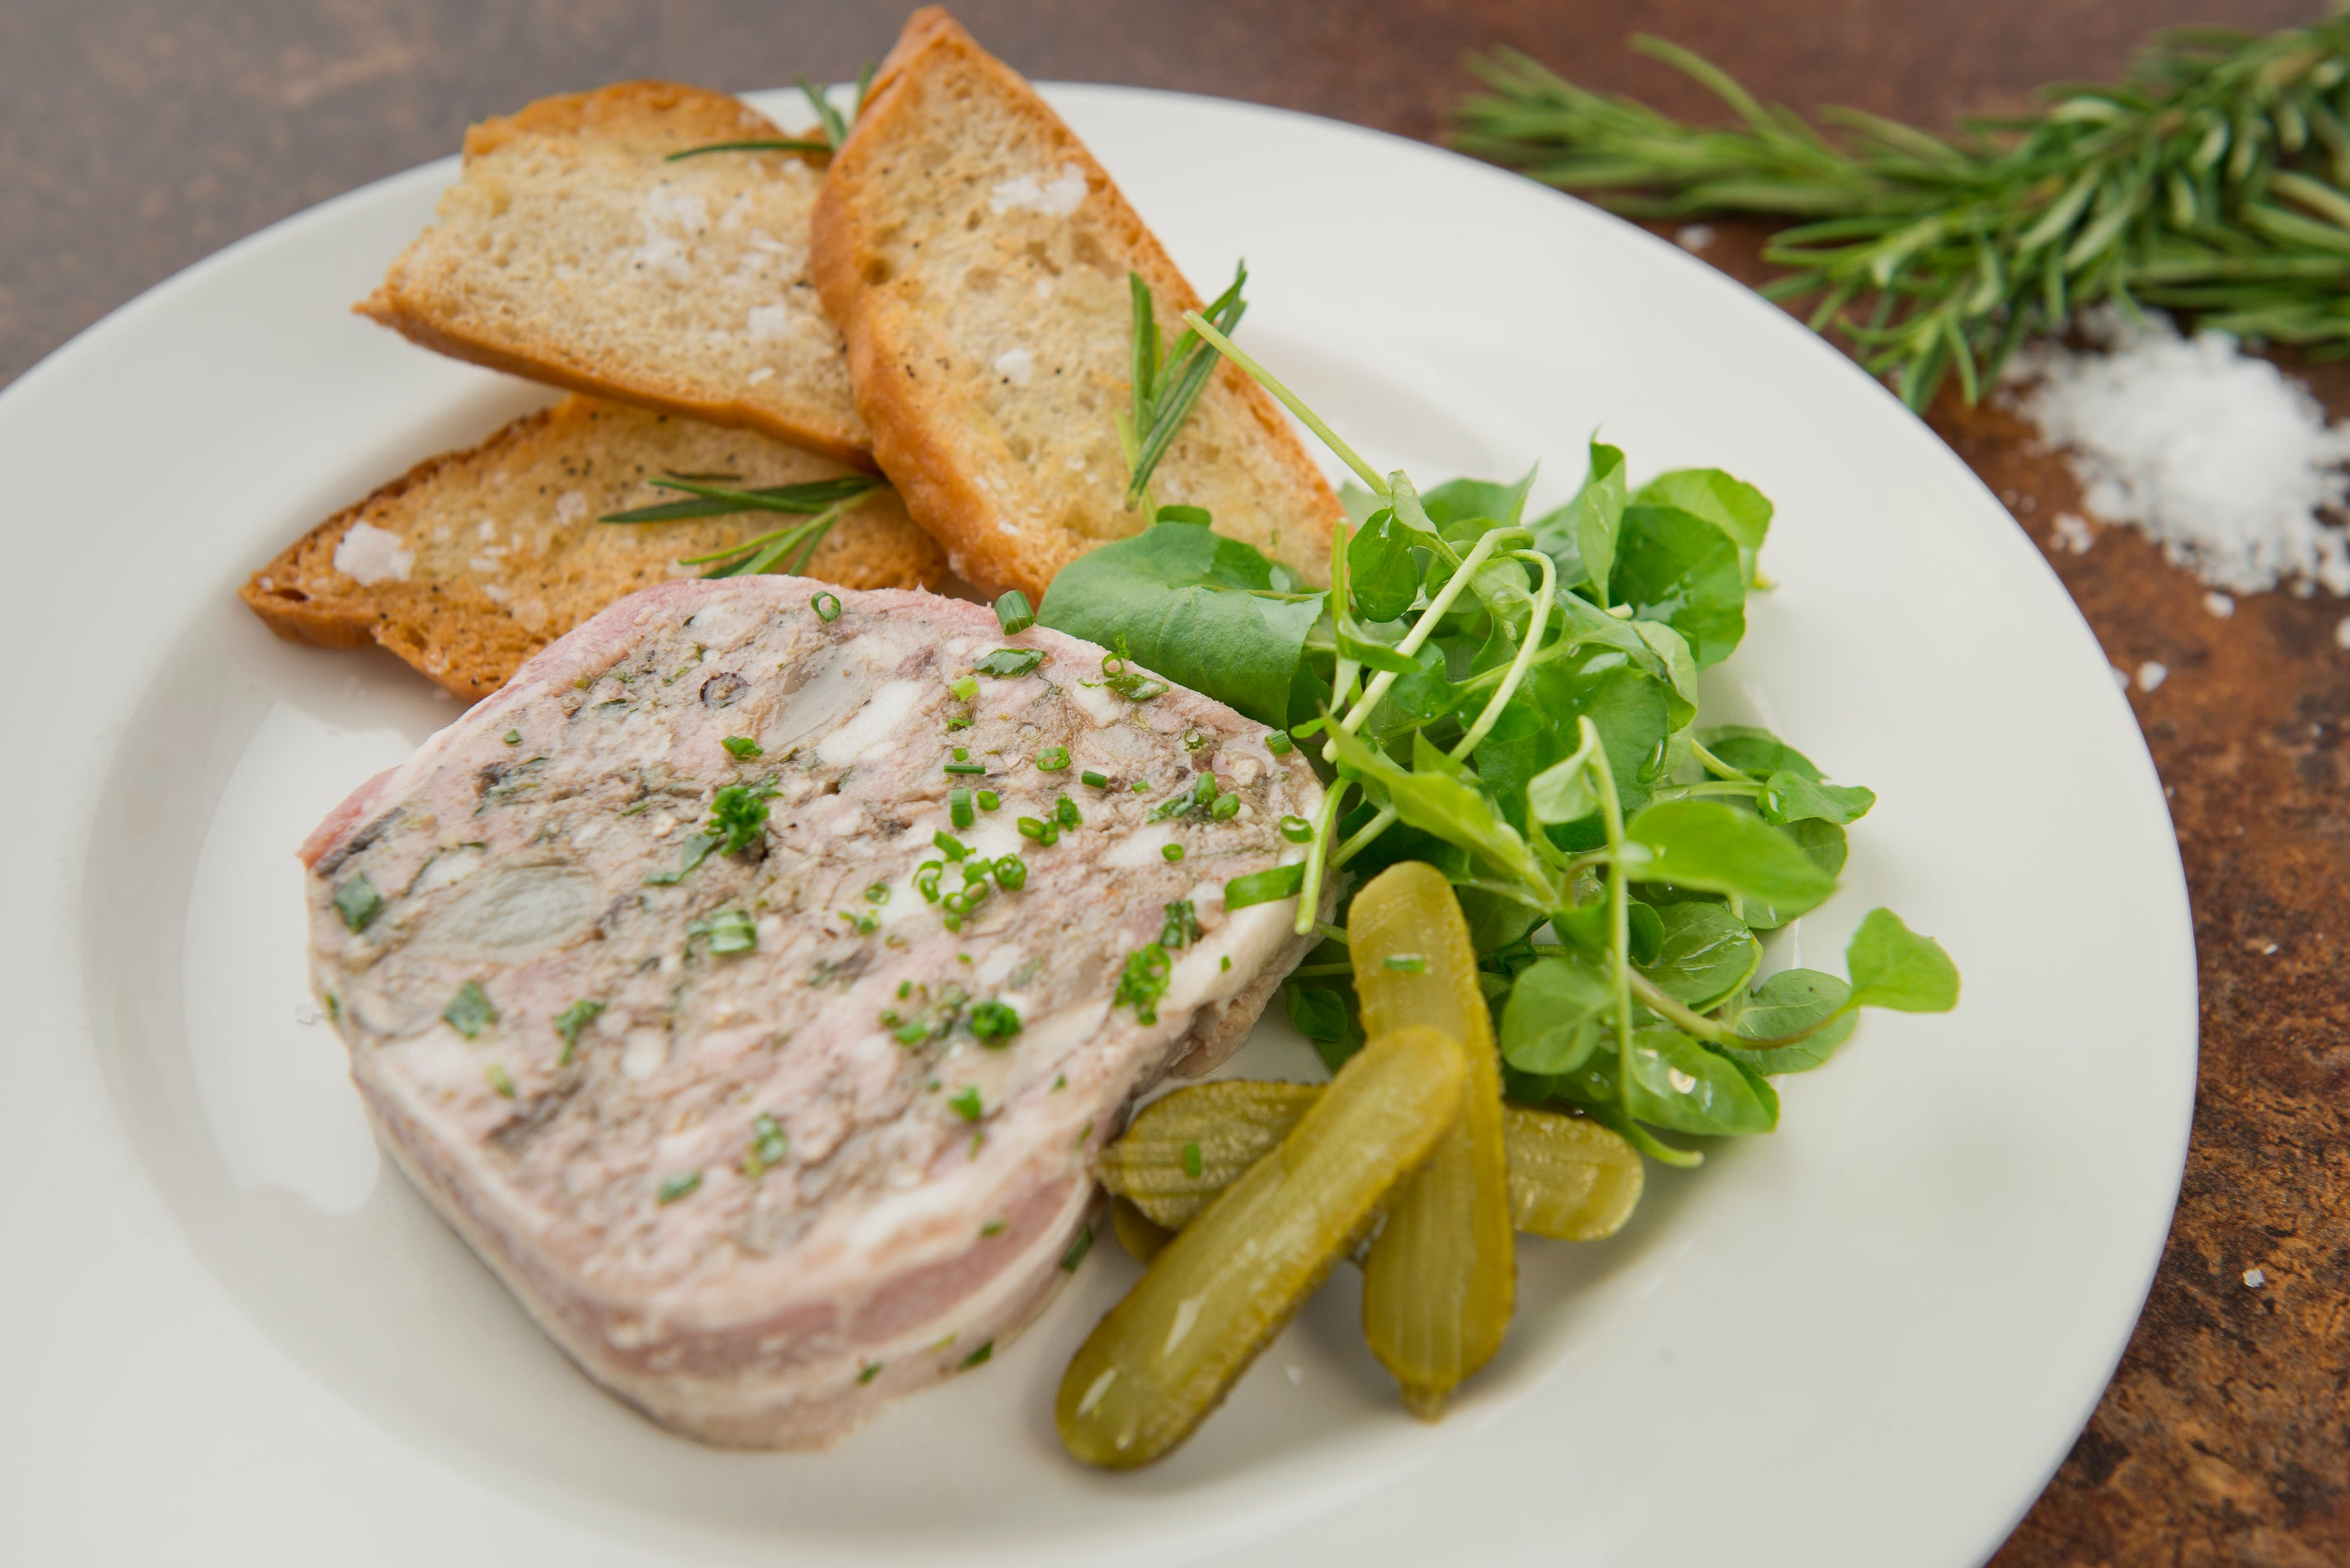 Pork terrine with crostini